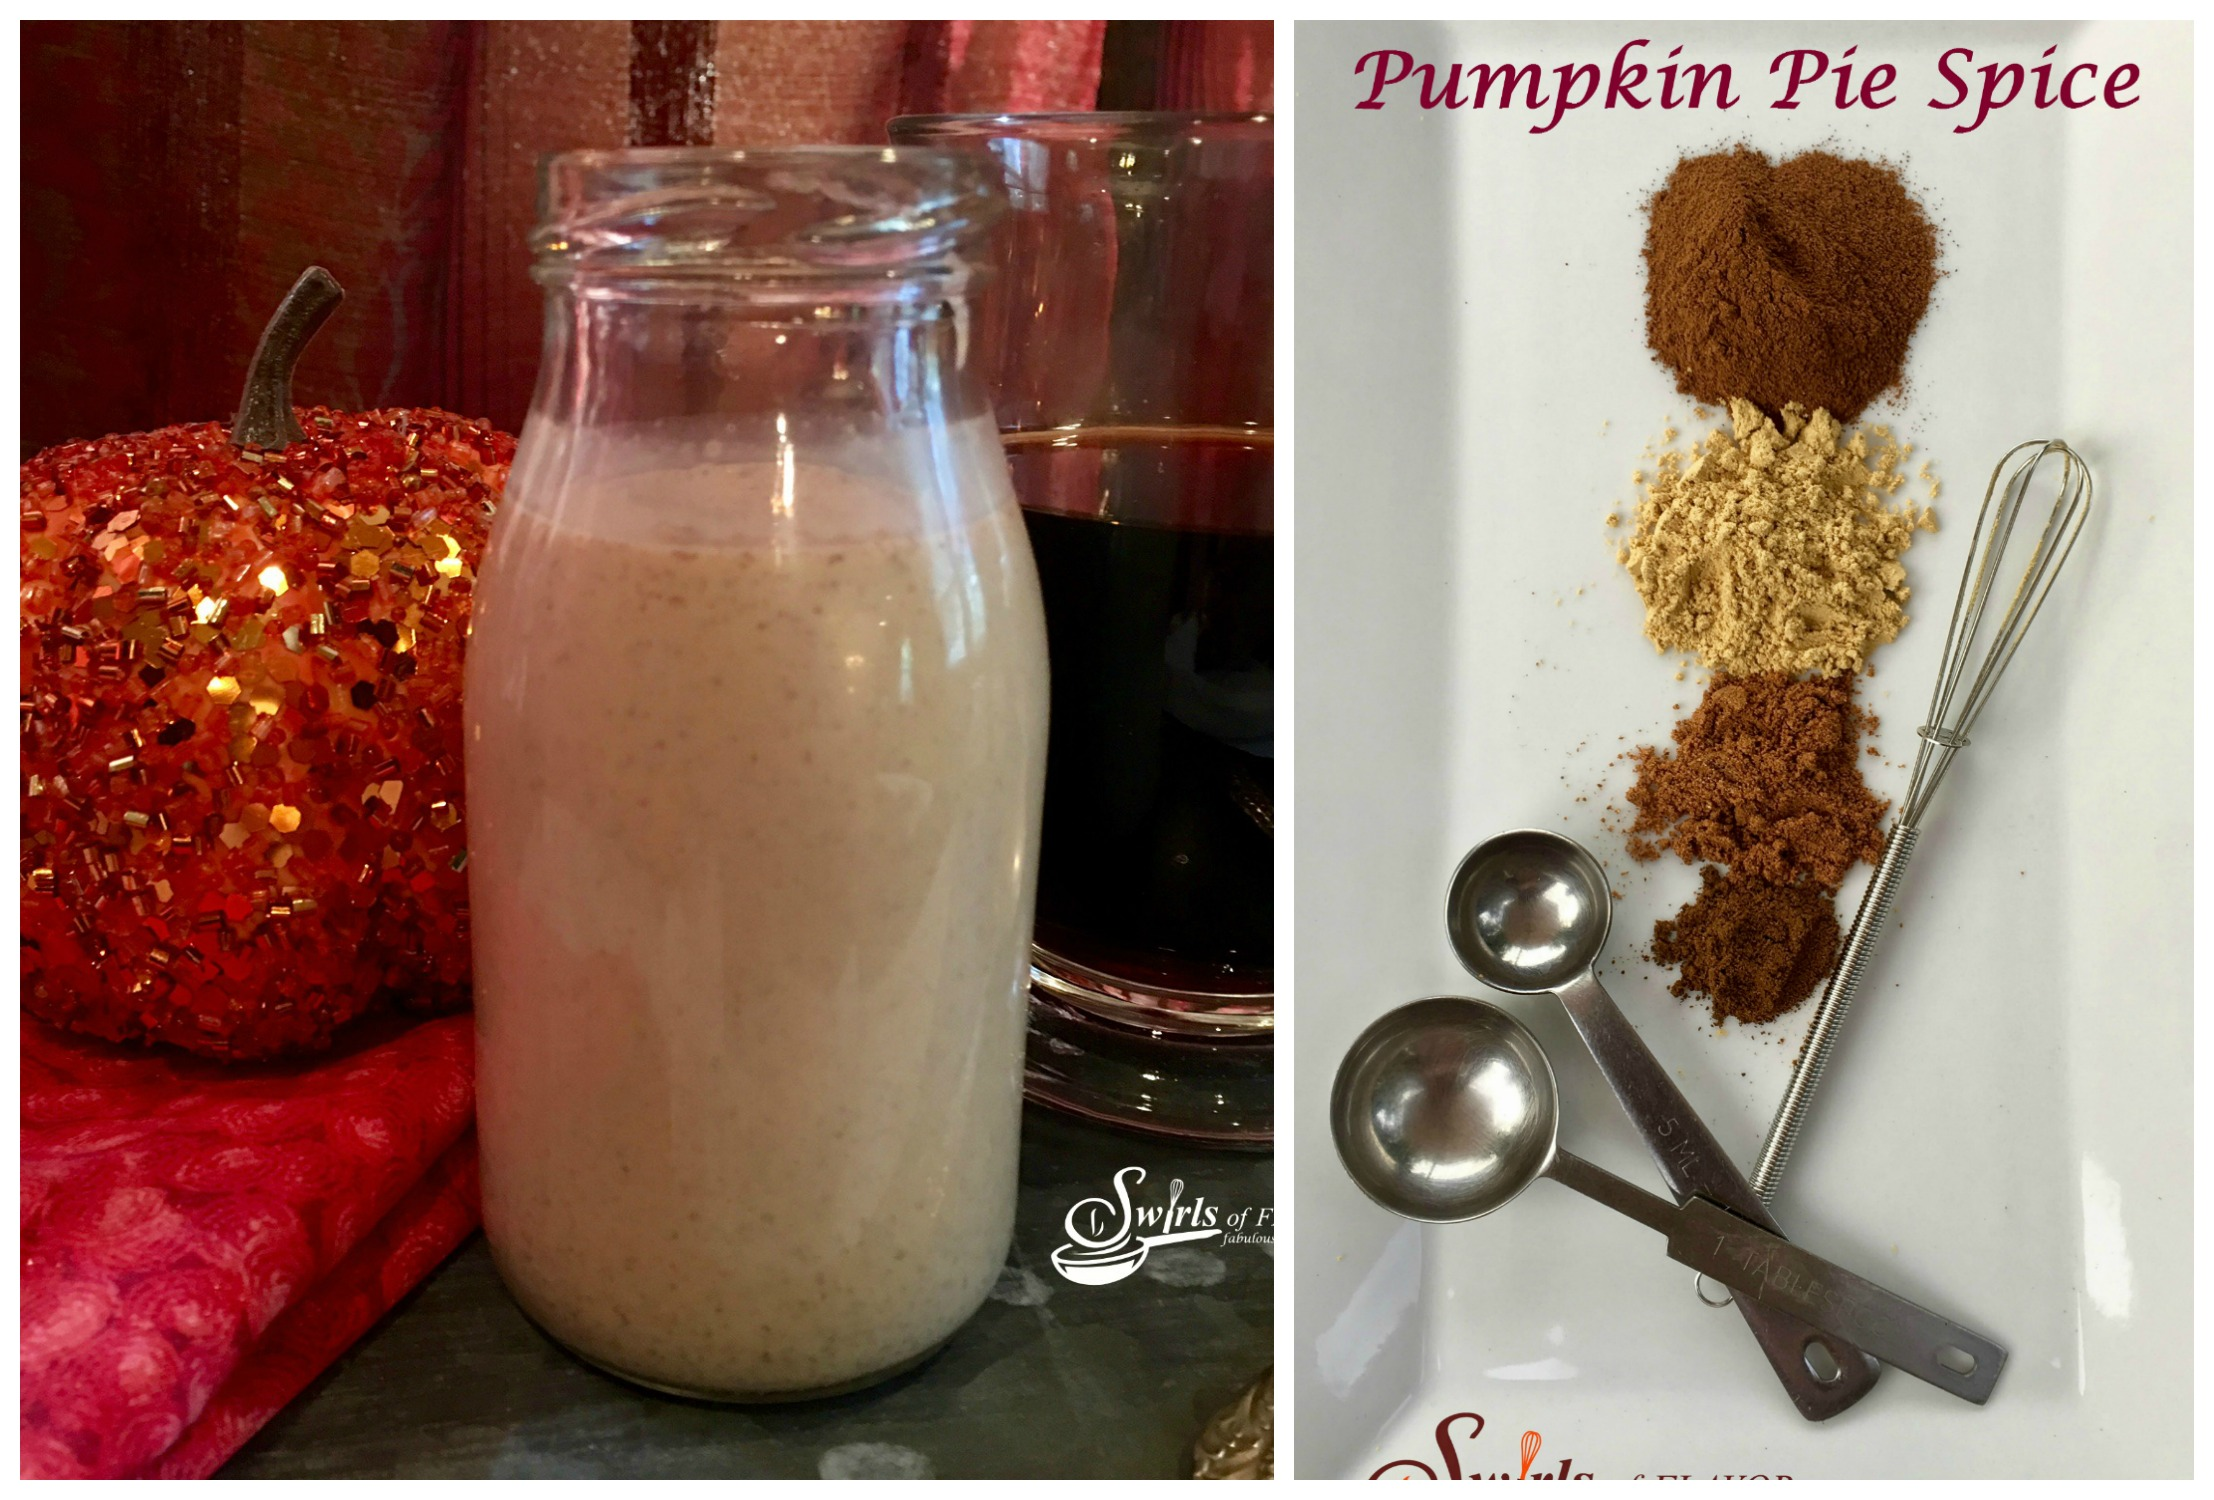 Pumpkin Spice Creamer and Homemade Pumpkin Pie Spice